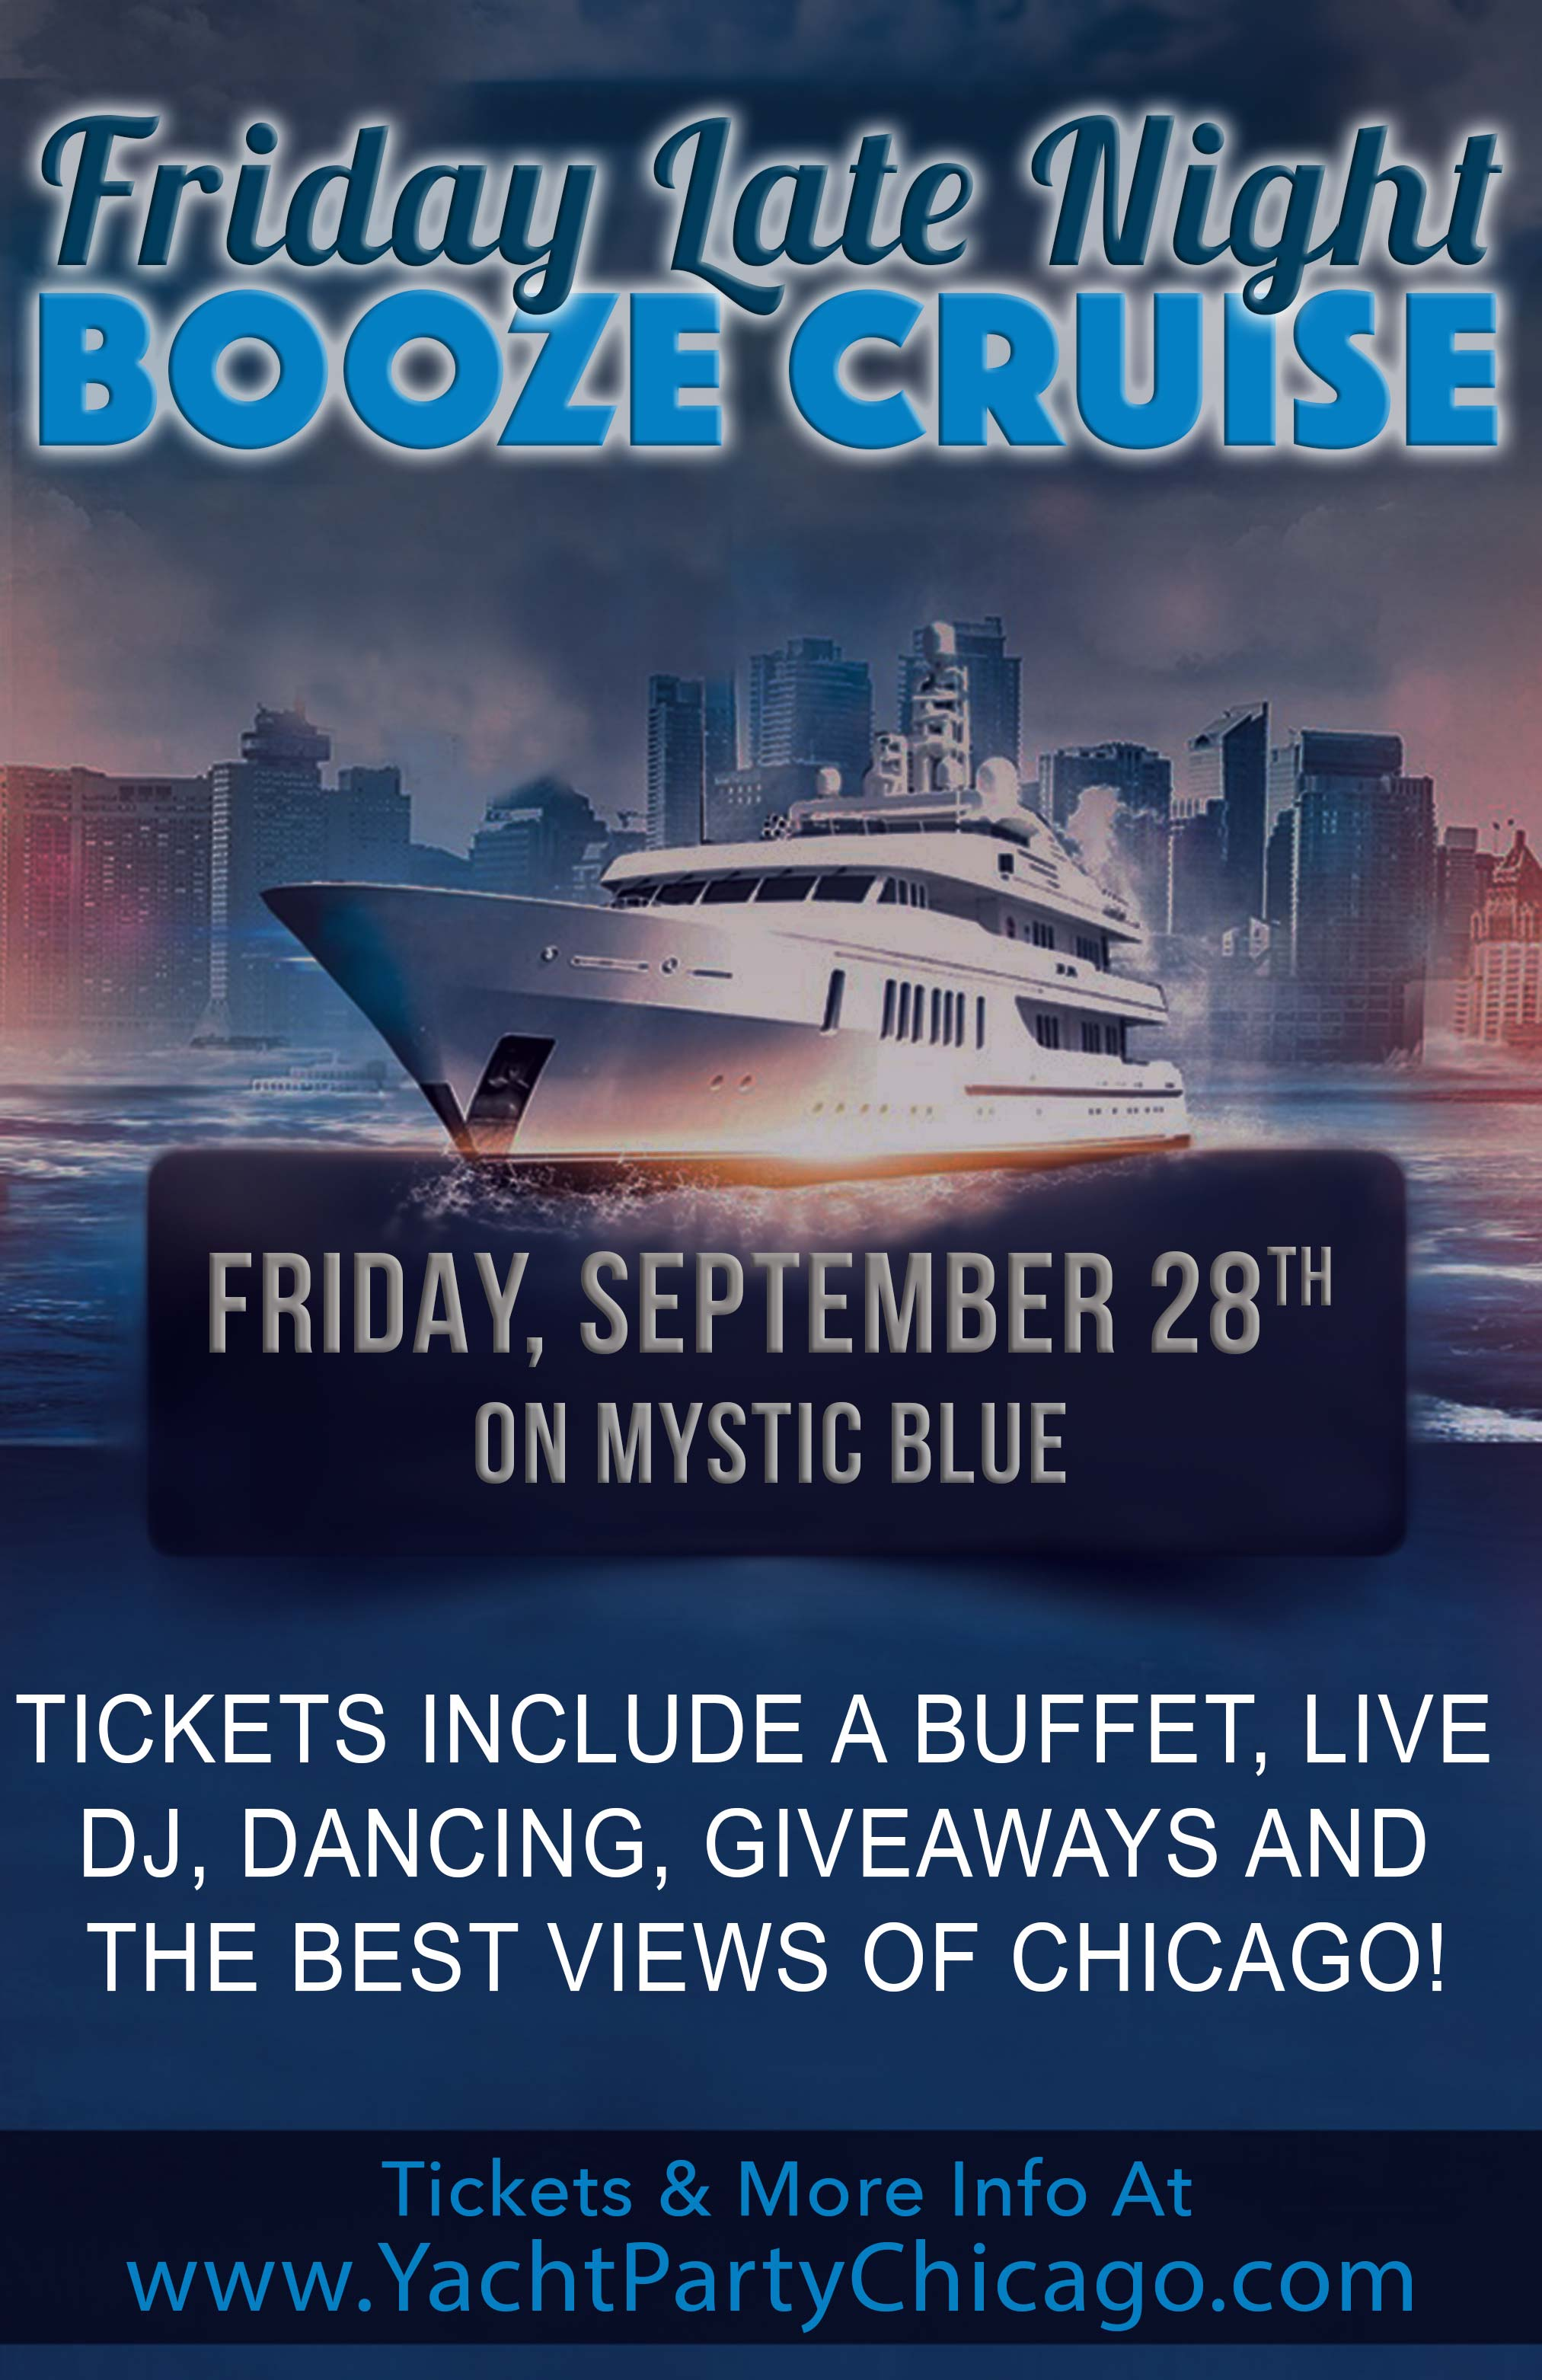 Friday Late Night Booze Cruise - Tickets include a Buffet, Live DJ, Dancing, and the best views of Chicago!